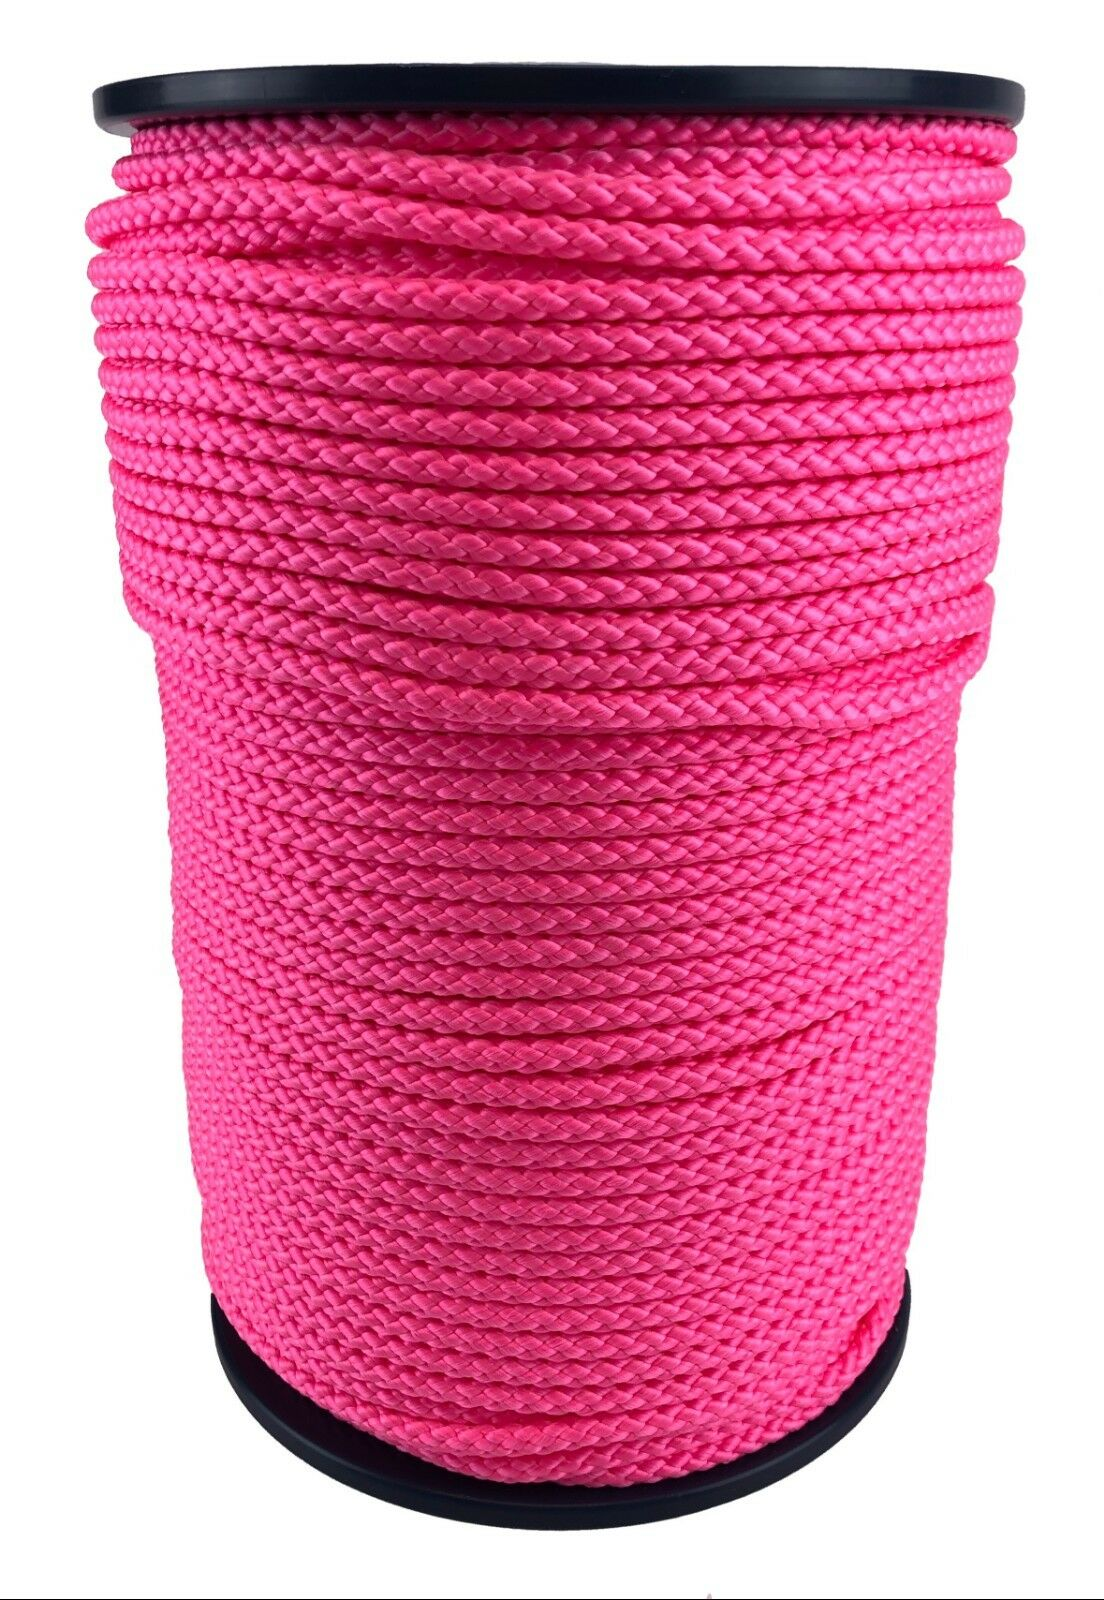 Polypropylene Rope PP 6mm 100m Neon-Pink Braided Poly Rope Paracord Drawstring